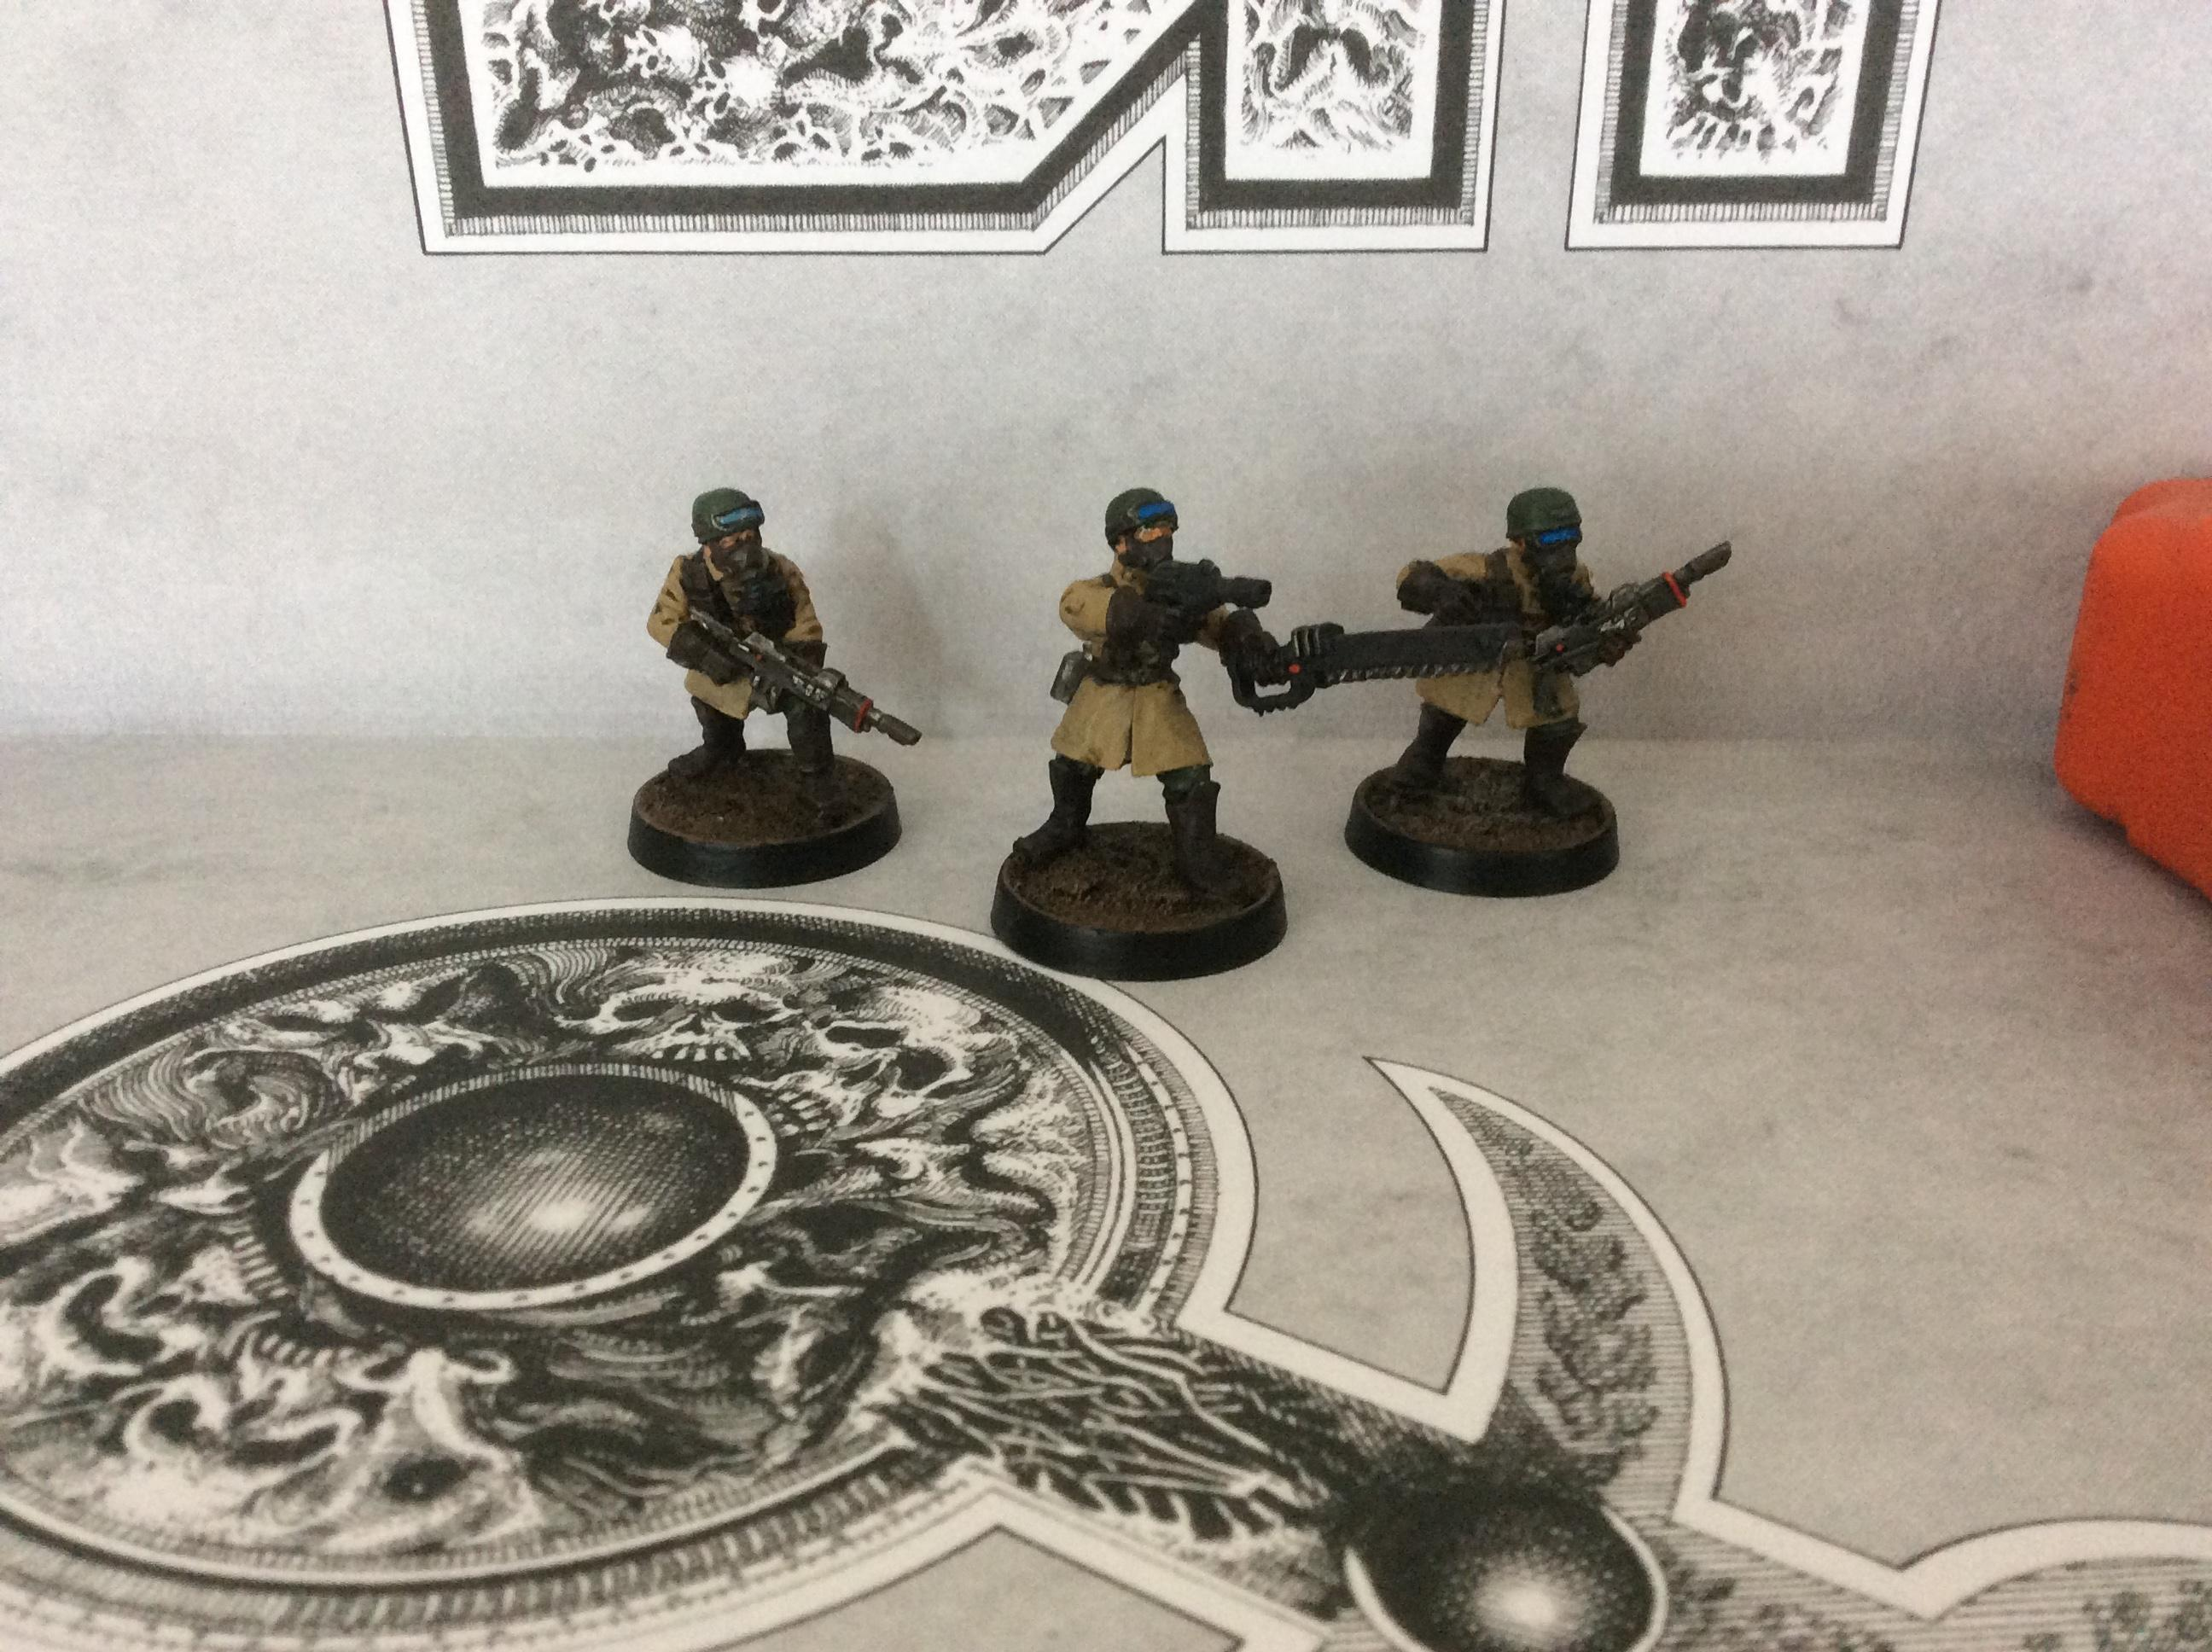 Astra Militarum, Imperial Guard, Steel Legion, Warhammer 40,000